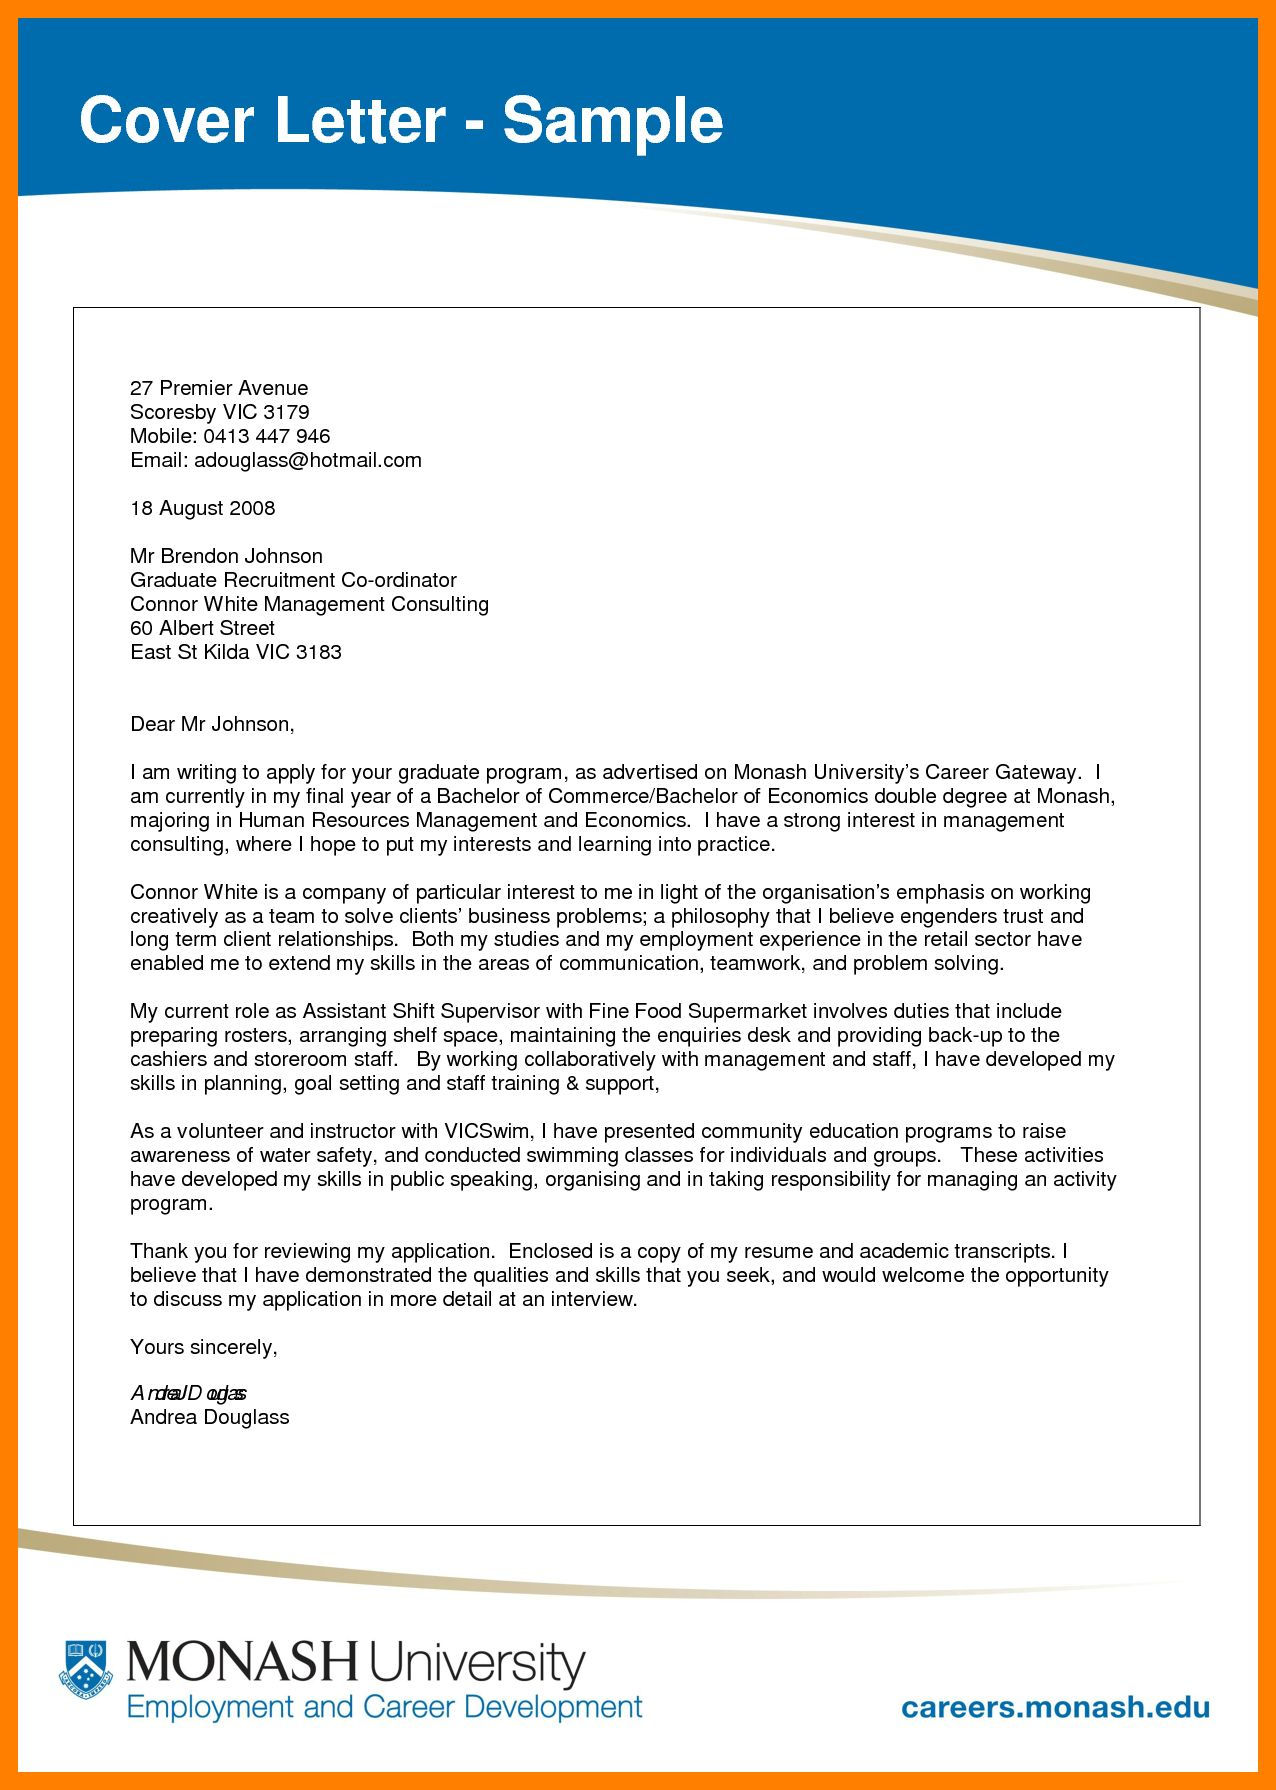 26 Cover Letter Sample Pdf 11 Todd Cerney